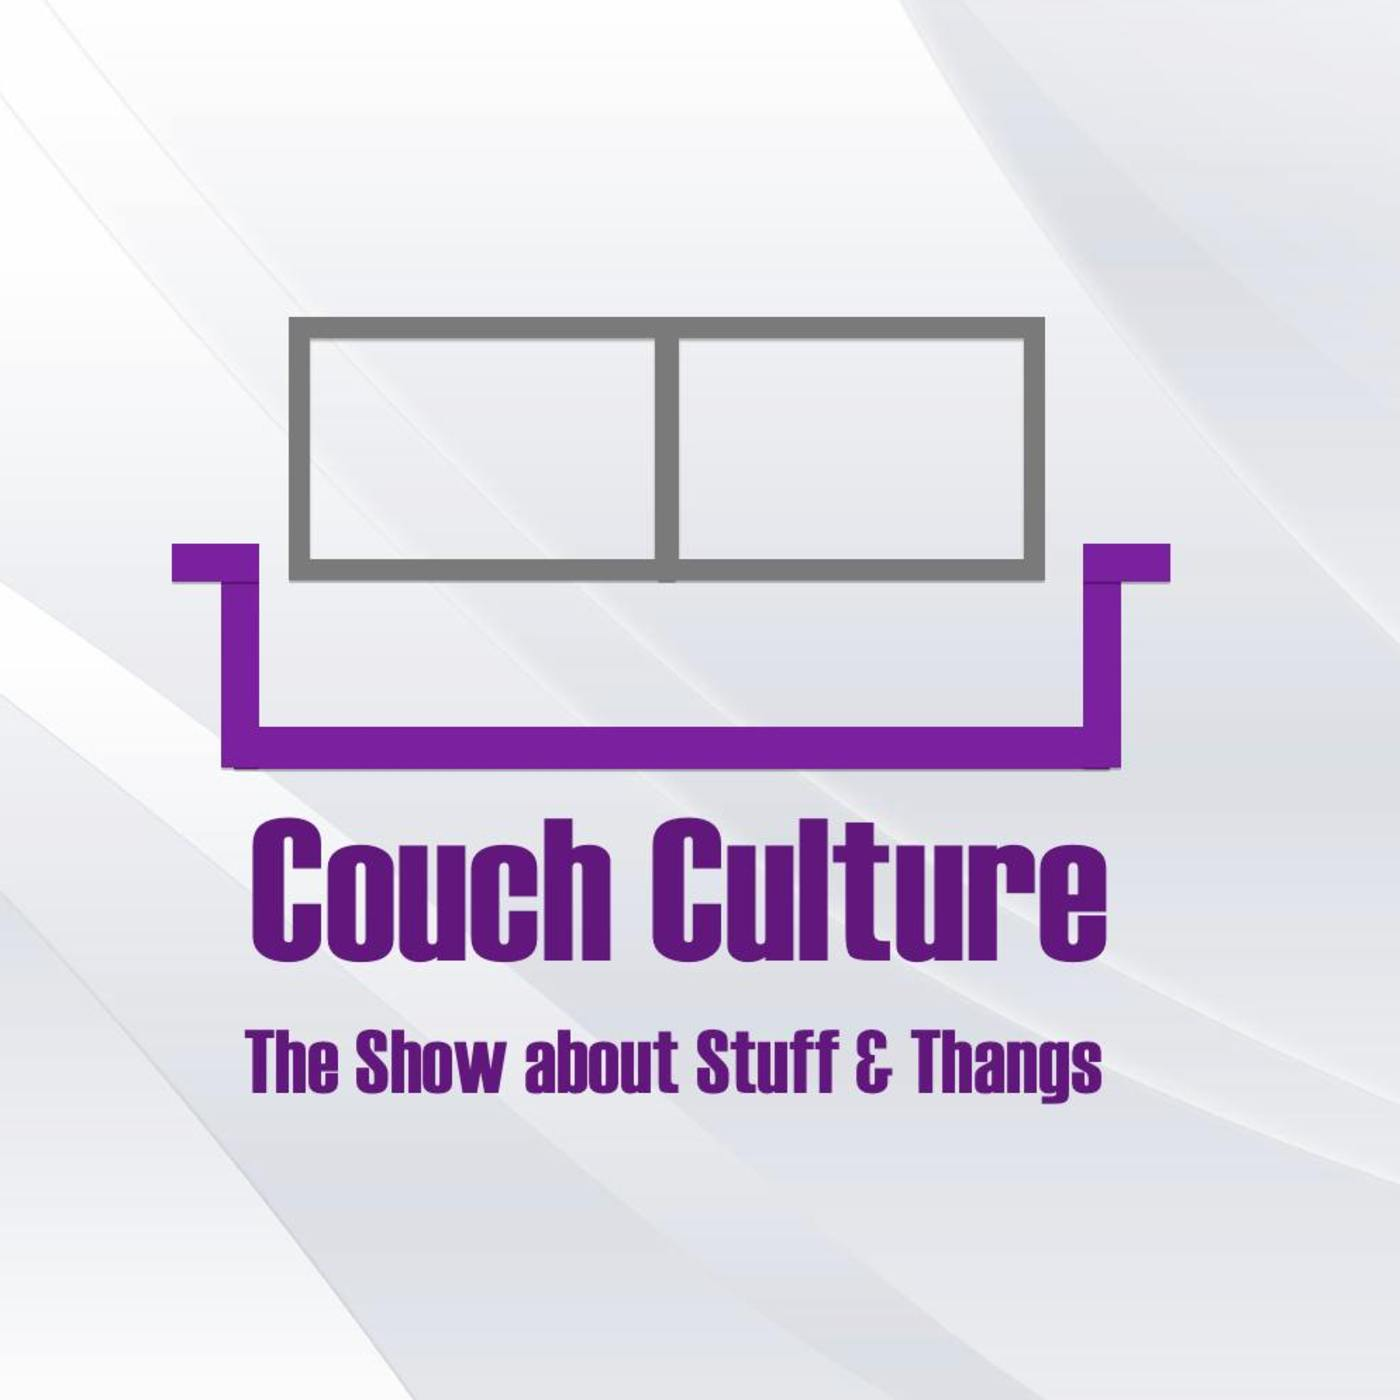 Couch Culture